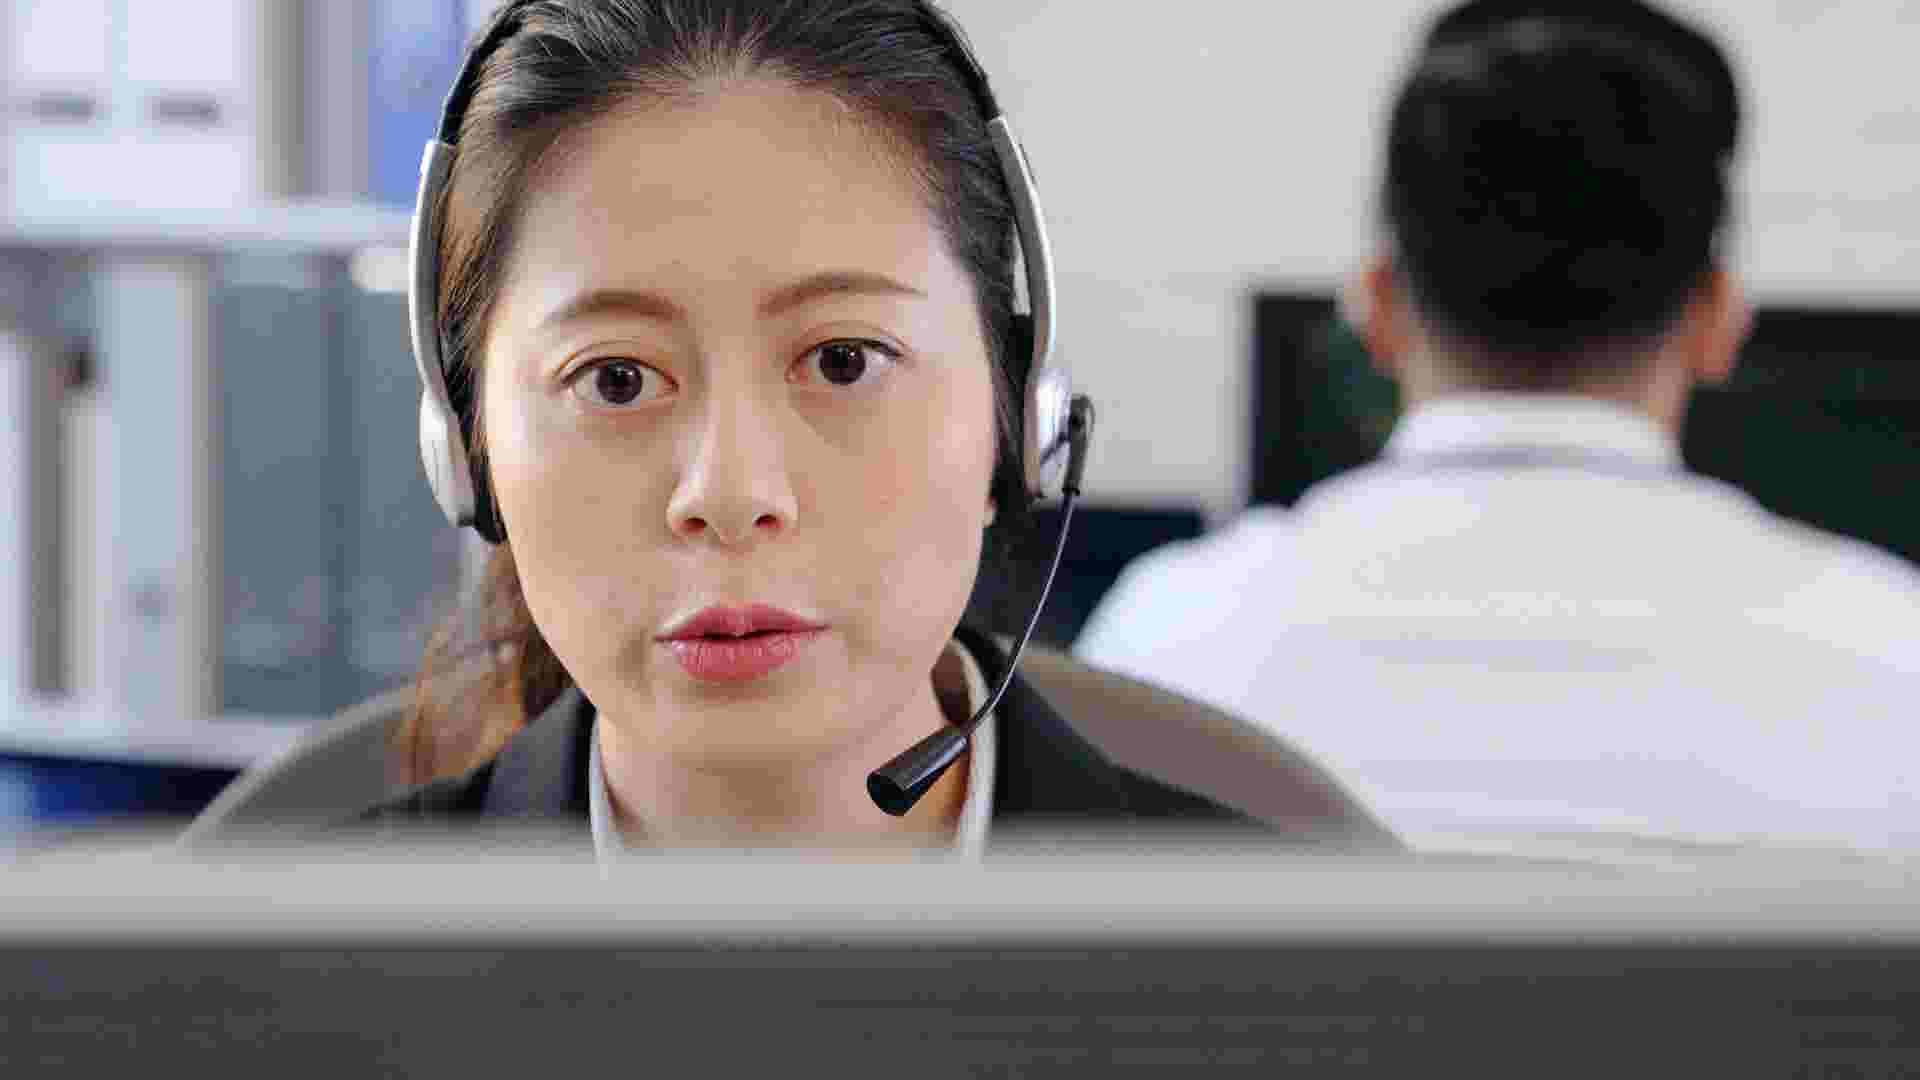 911 call centers struggle to find operators for life-saving calls